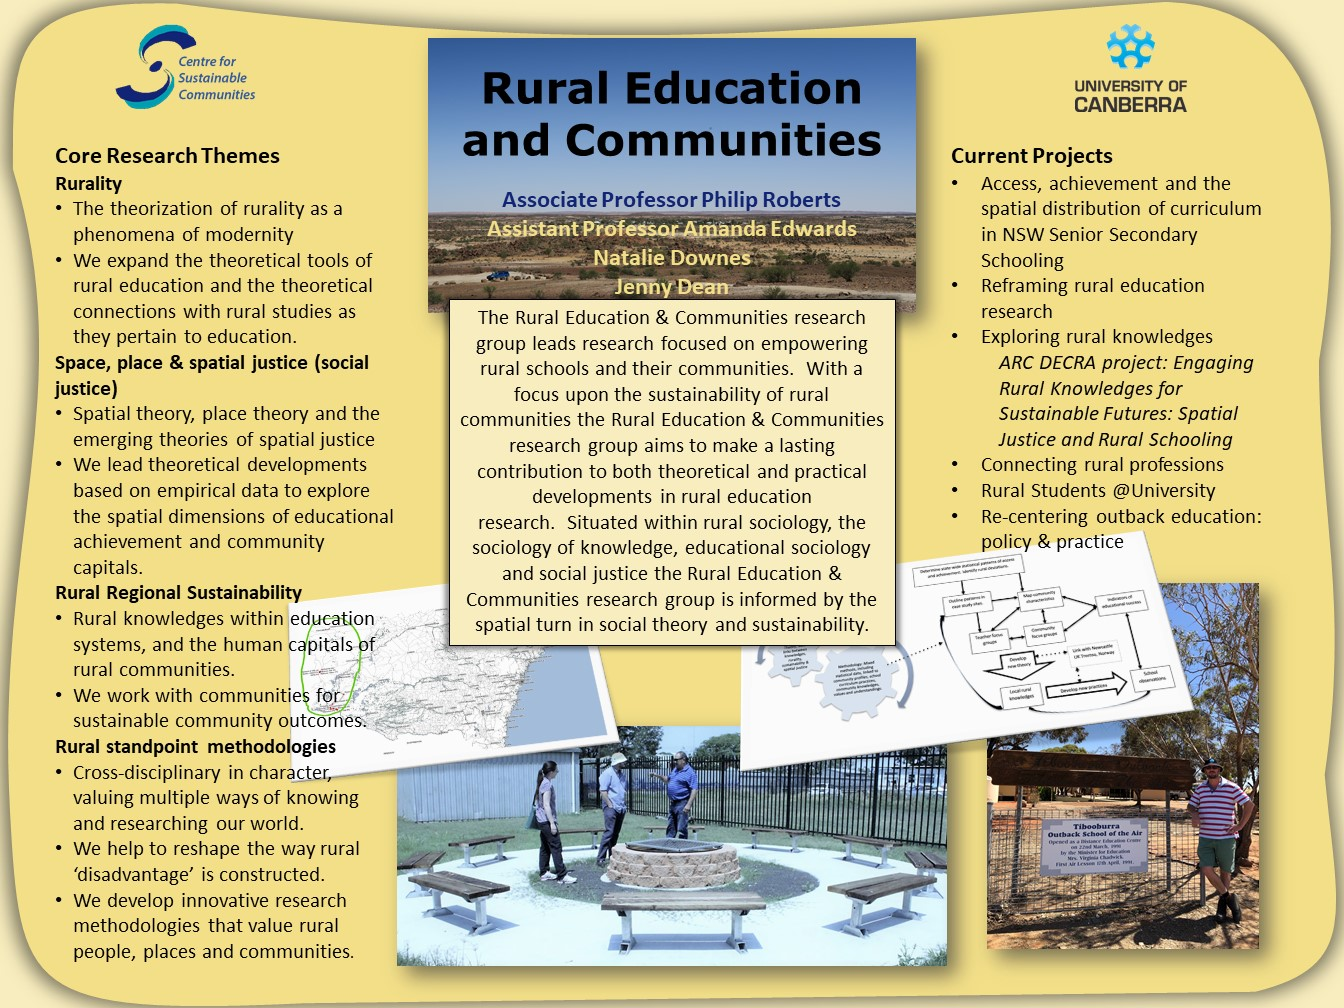 Rural Education and Communities RG Poster